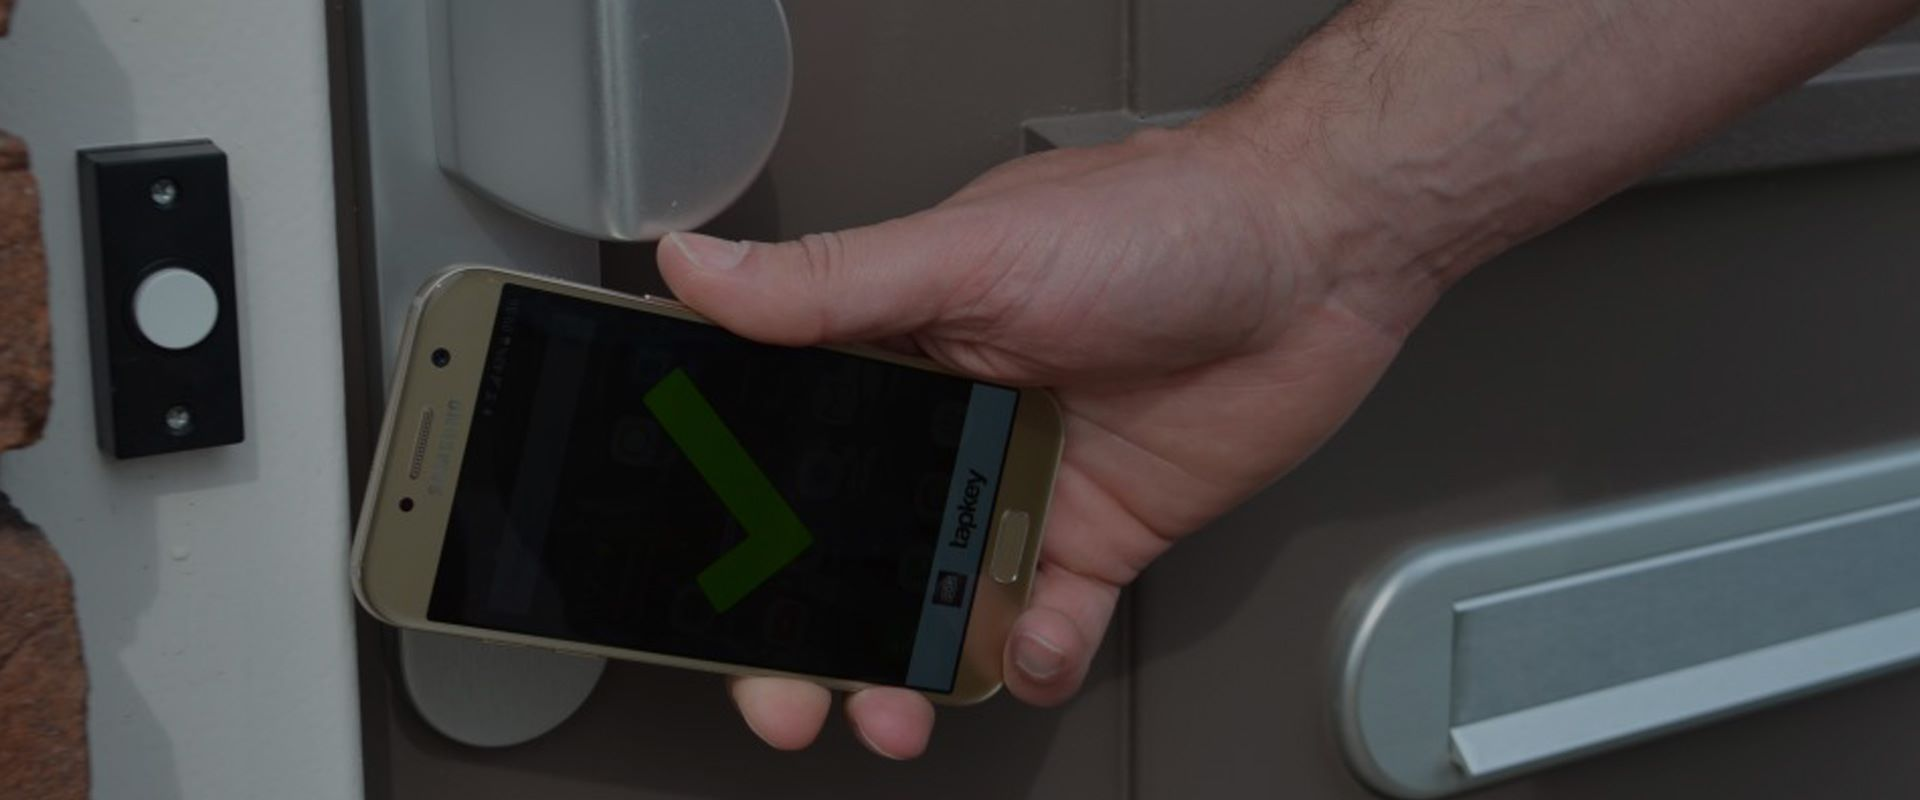 operating a tapkey cylinder with a mobile phone